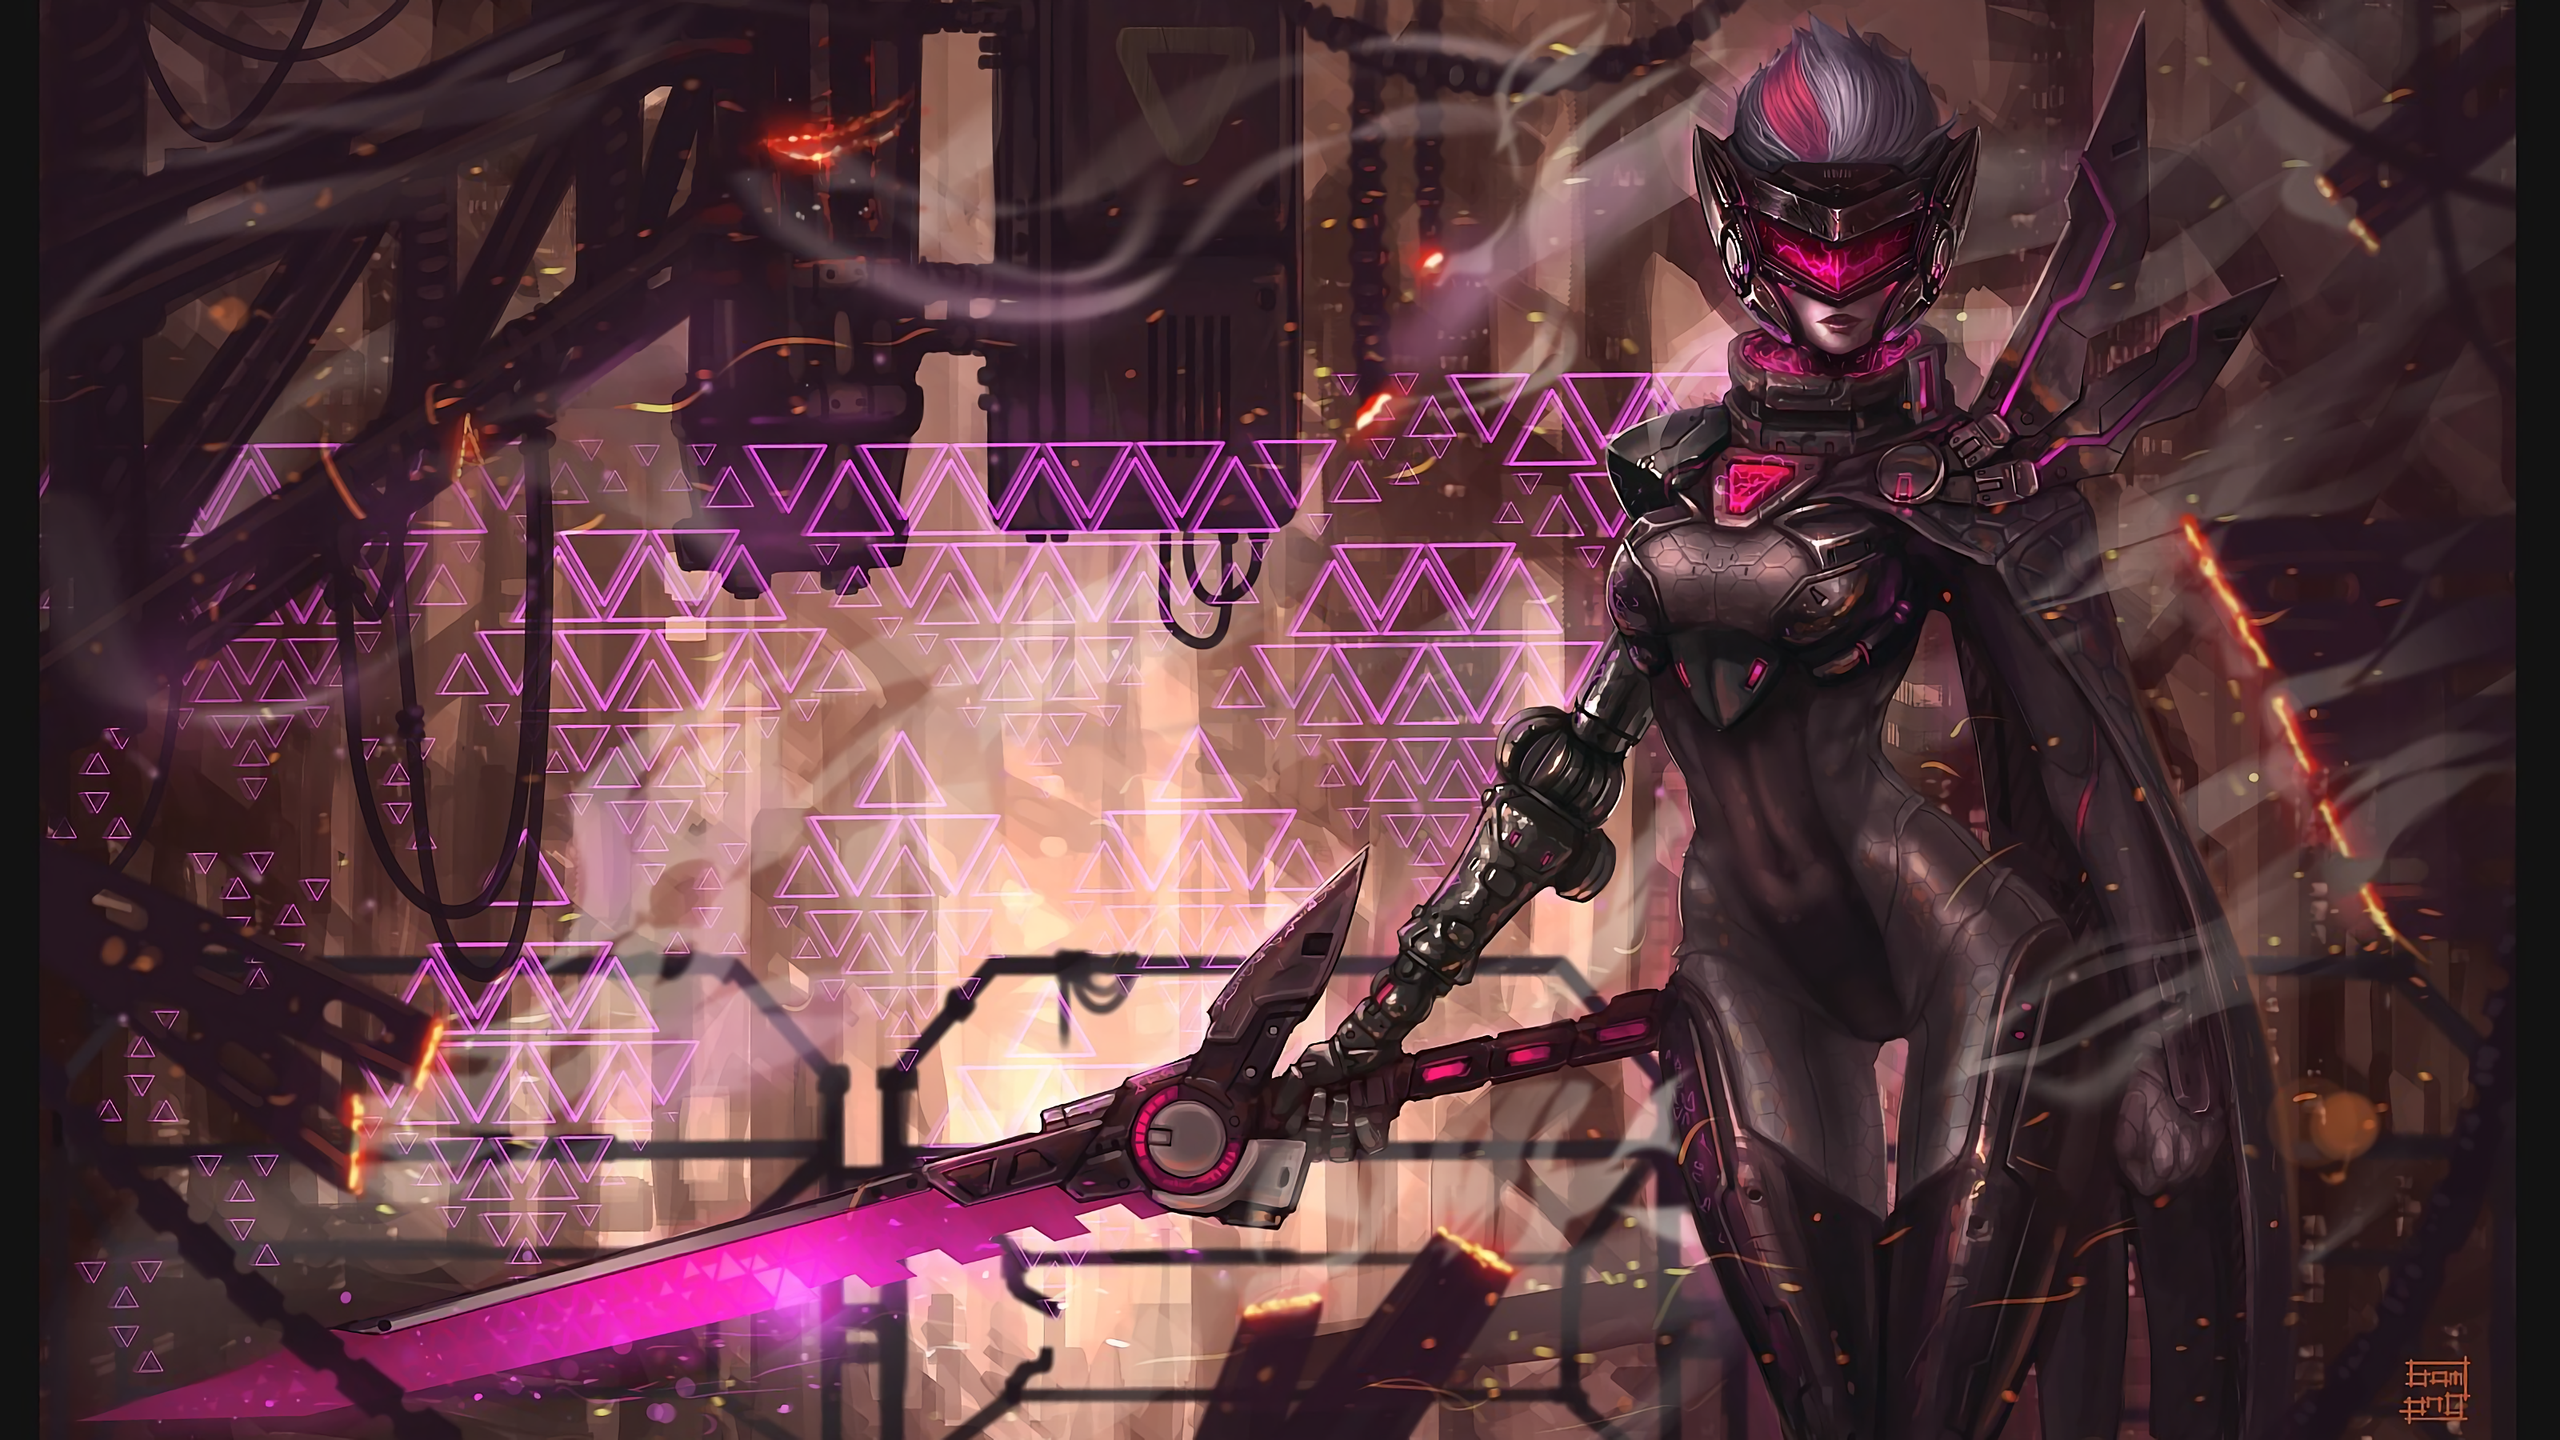 PROJECT: Fiora wallpaper